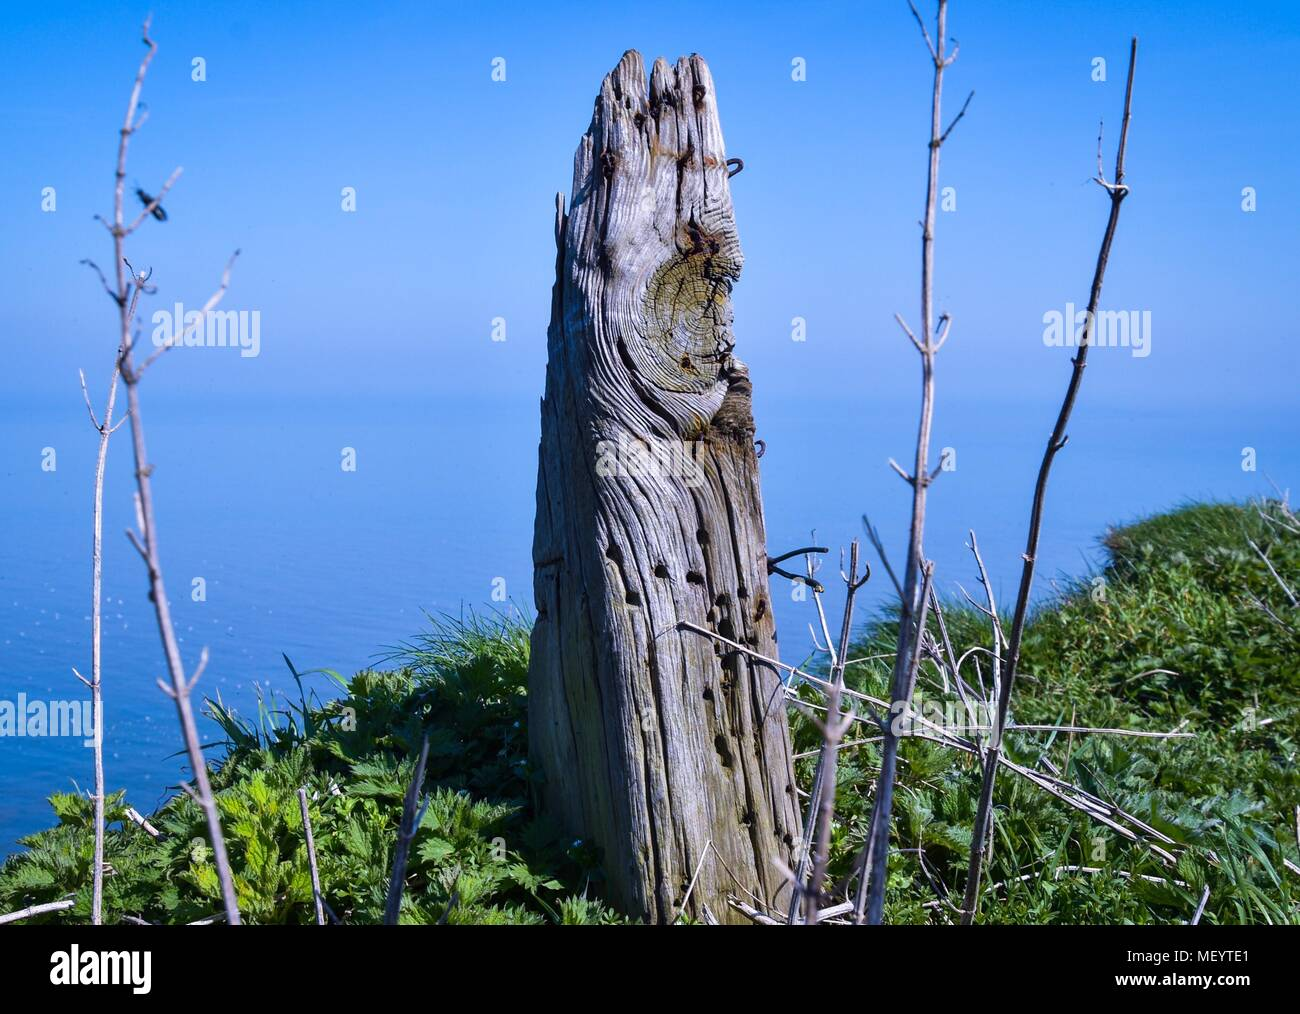 Old Fence Post on the Cliff Edge - Stock Image